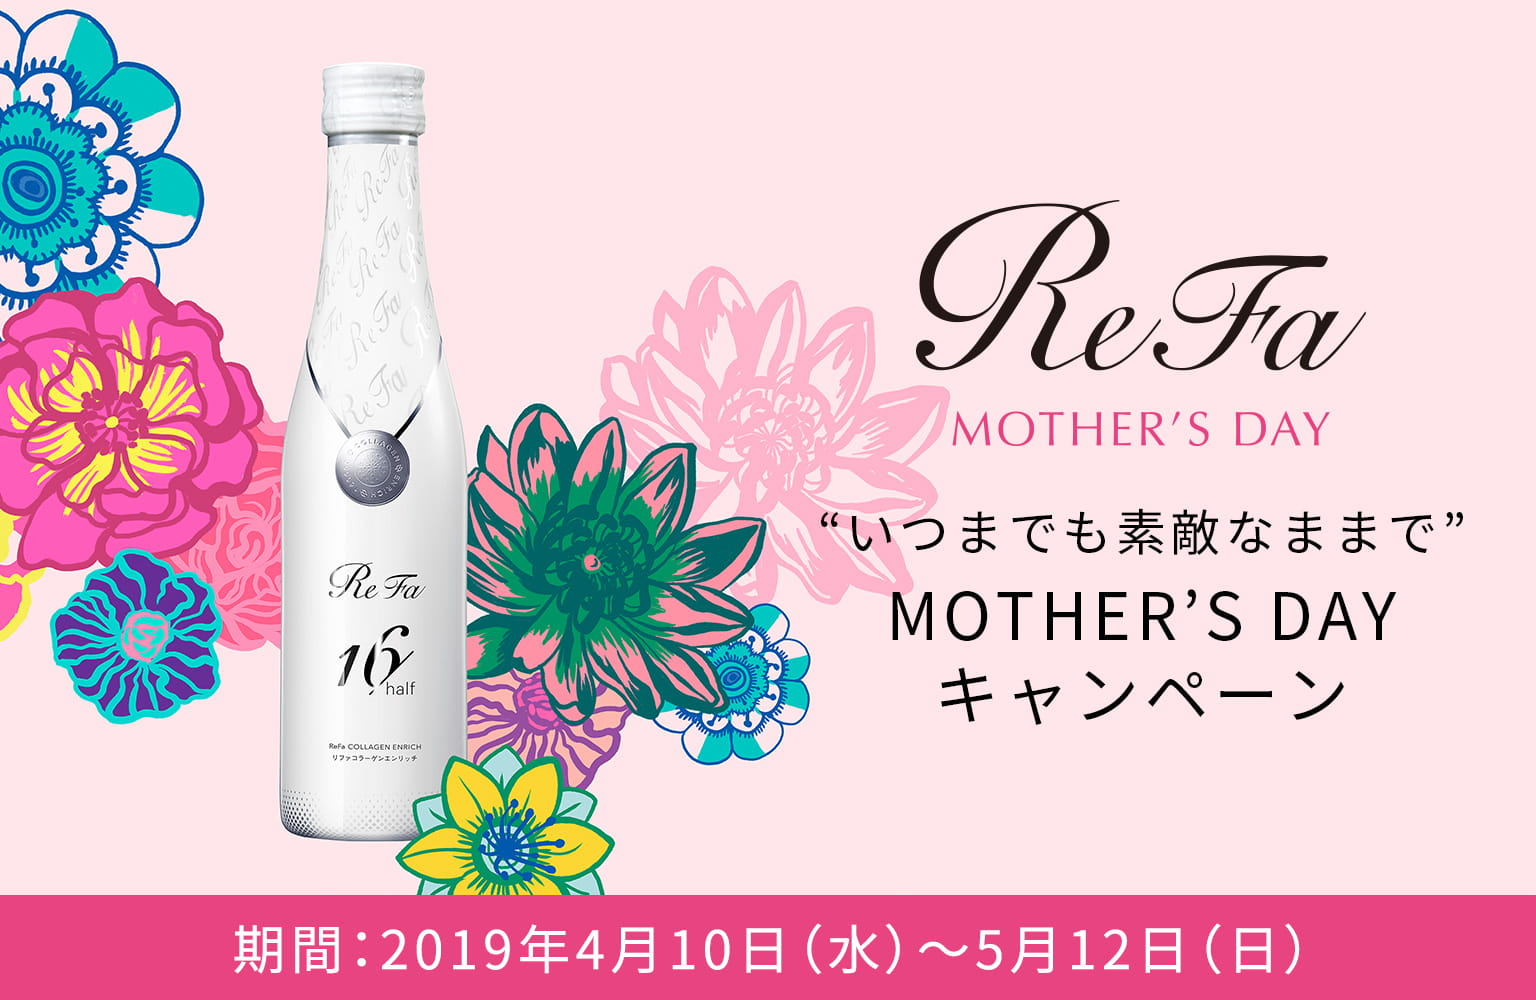 MOTHERS'S DAYキャンペーン